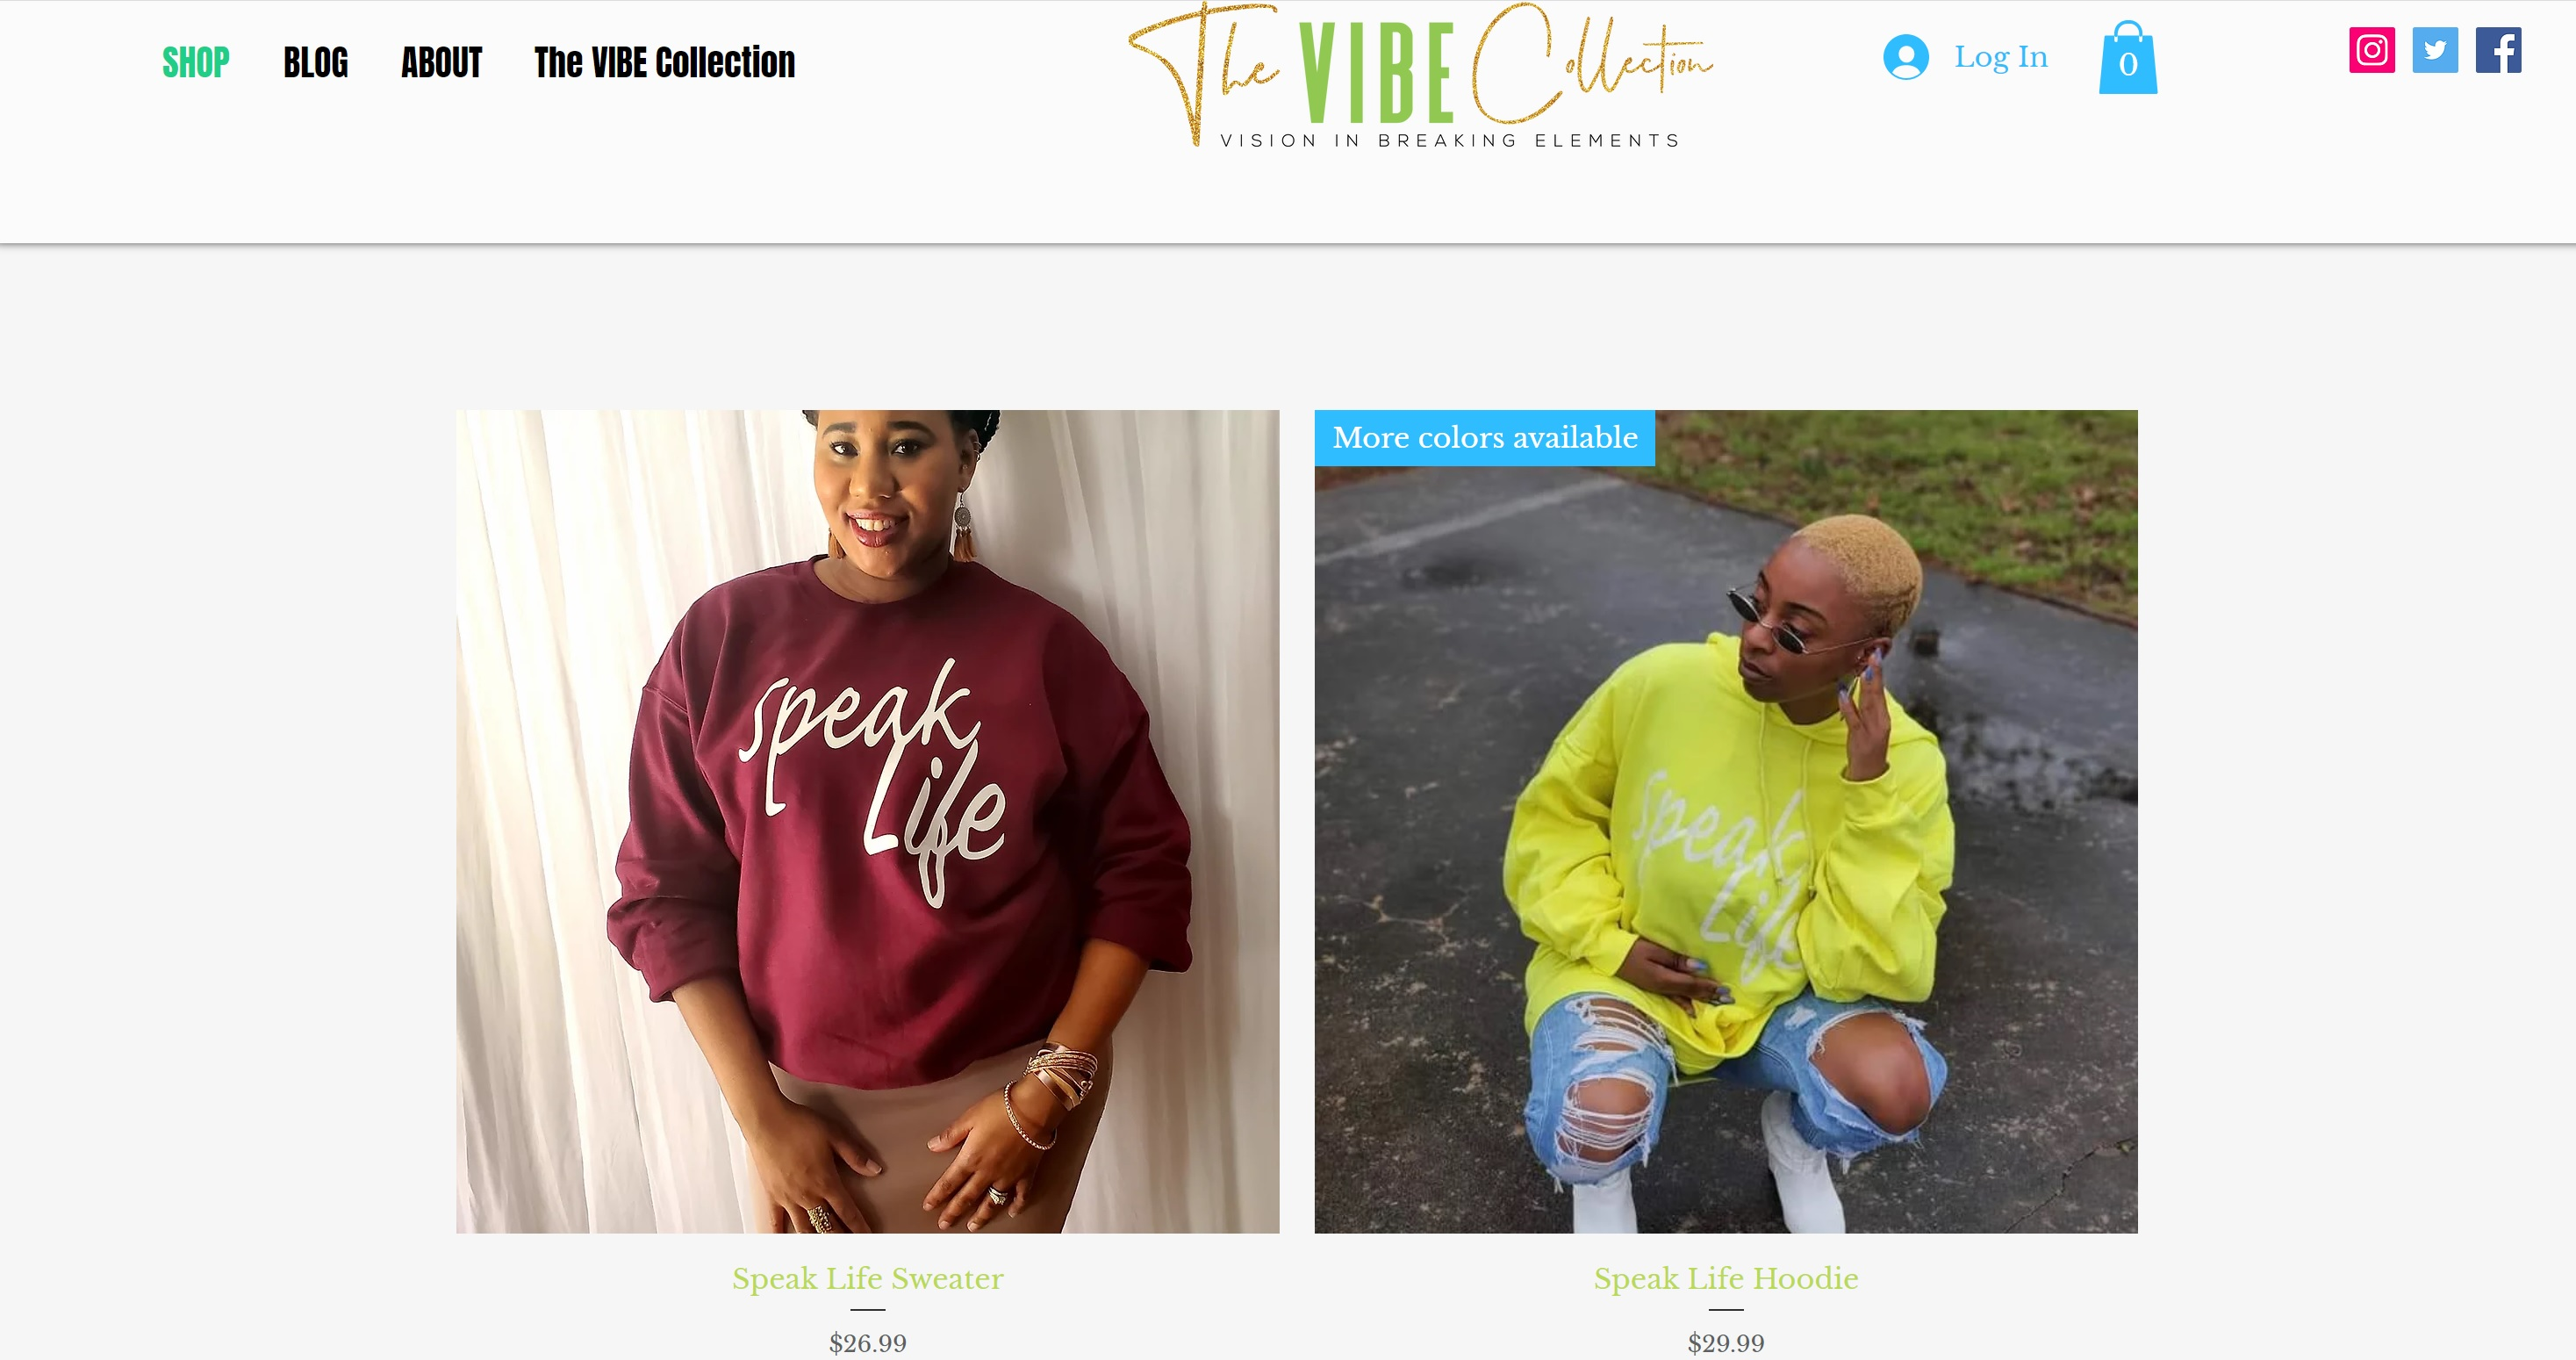 The Vibe Collection